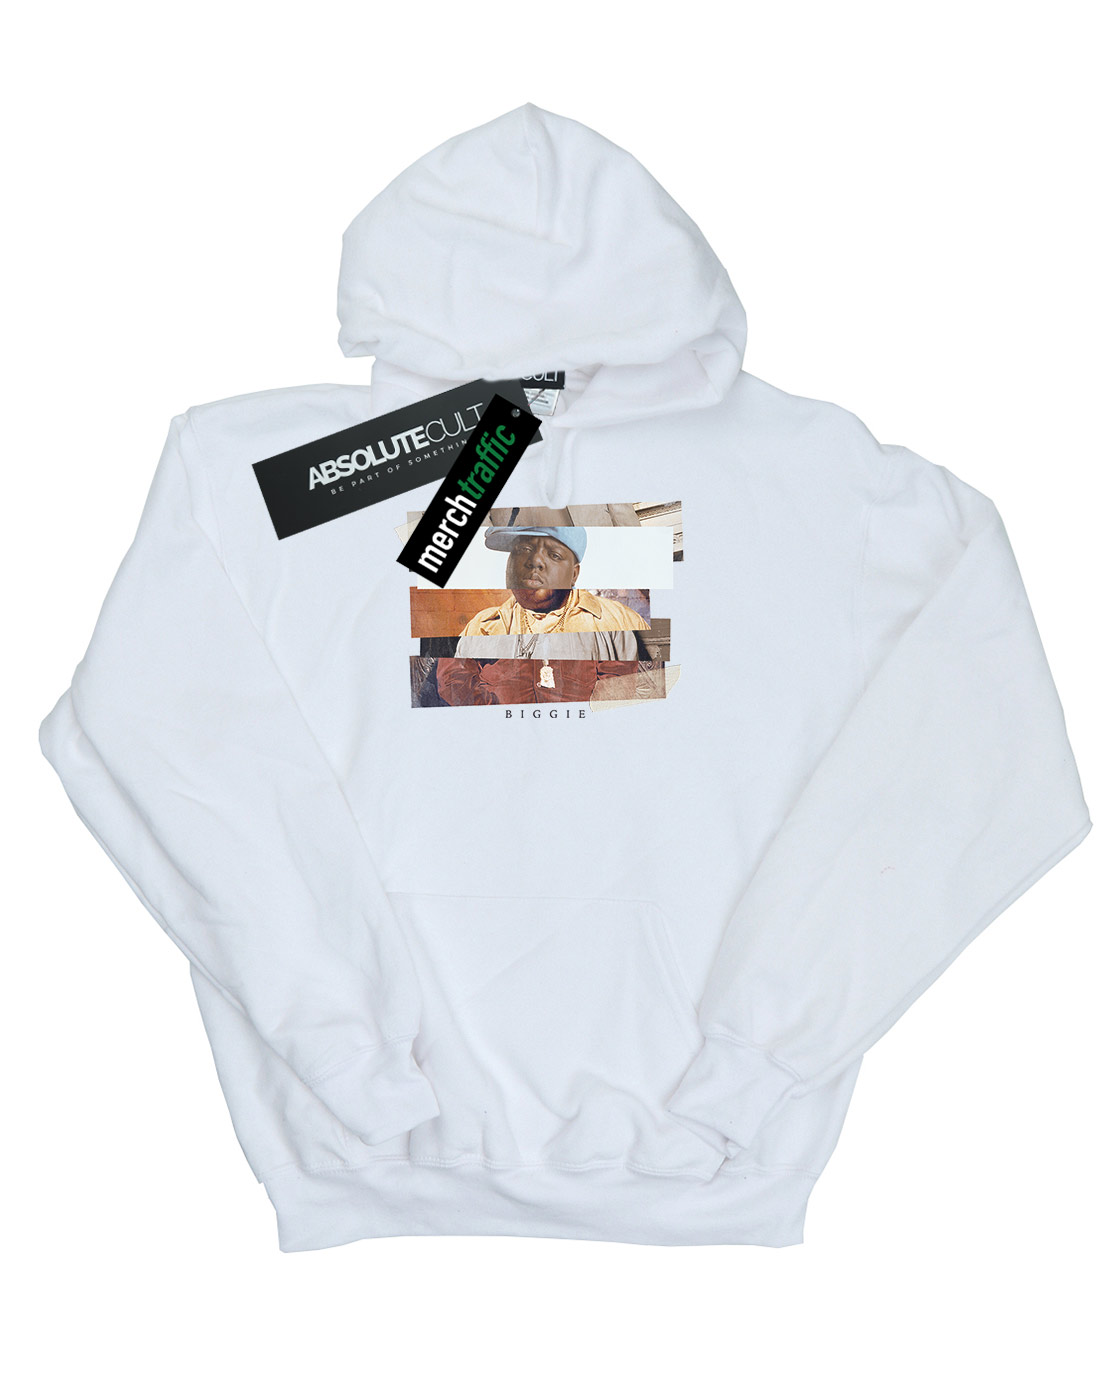 ABSOLUTECULT Notorious Big Boys Fence Photo Hoodie